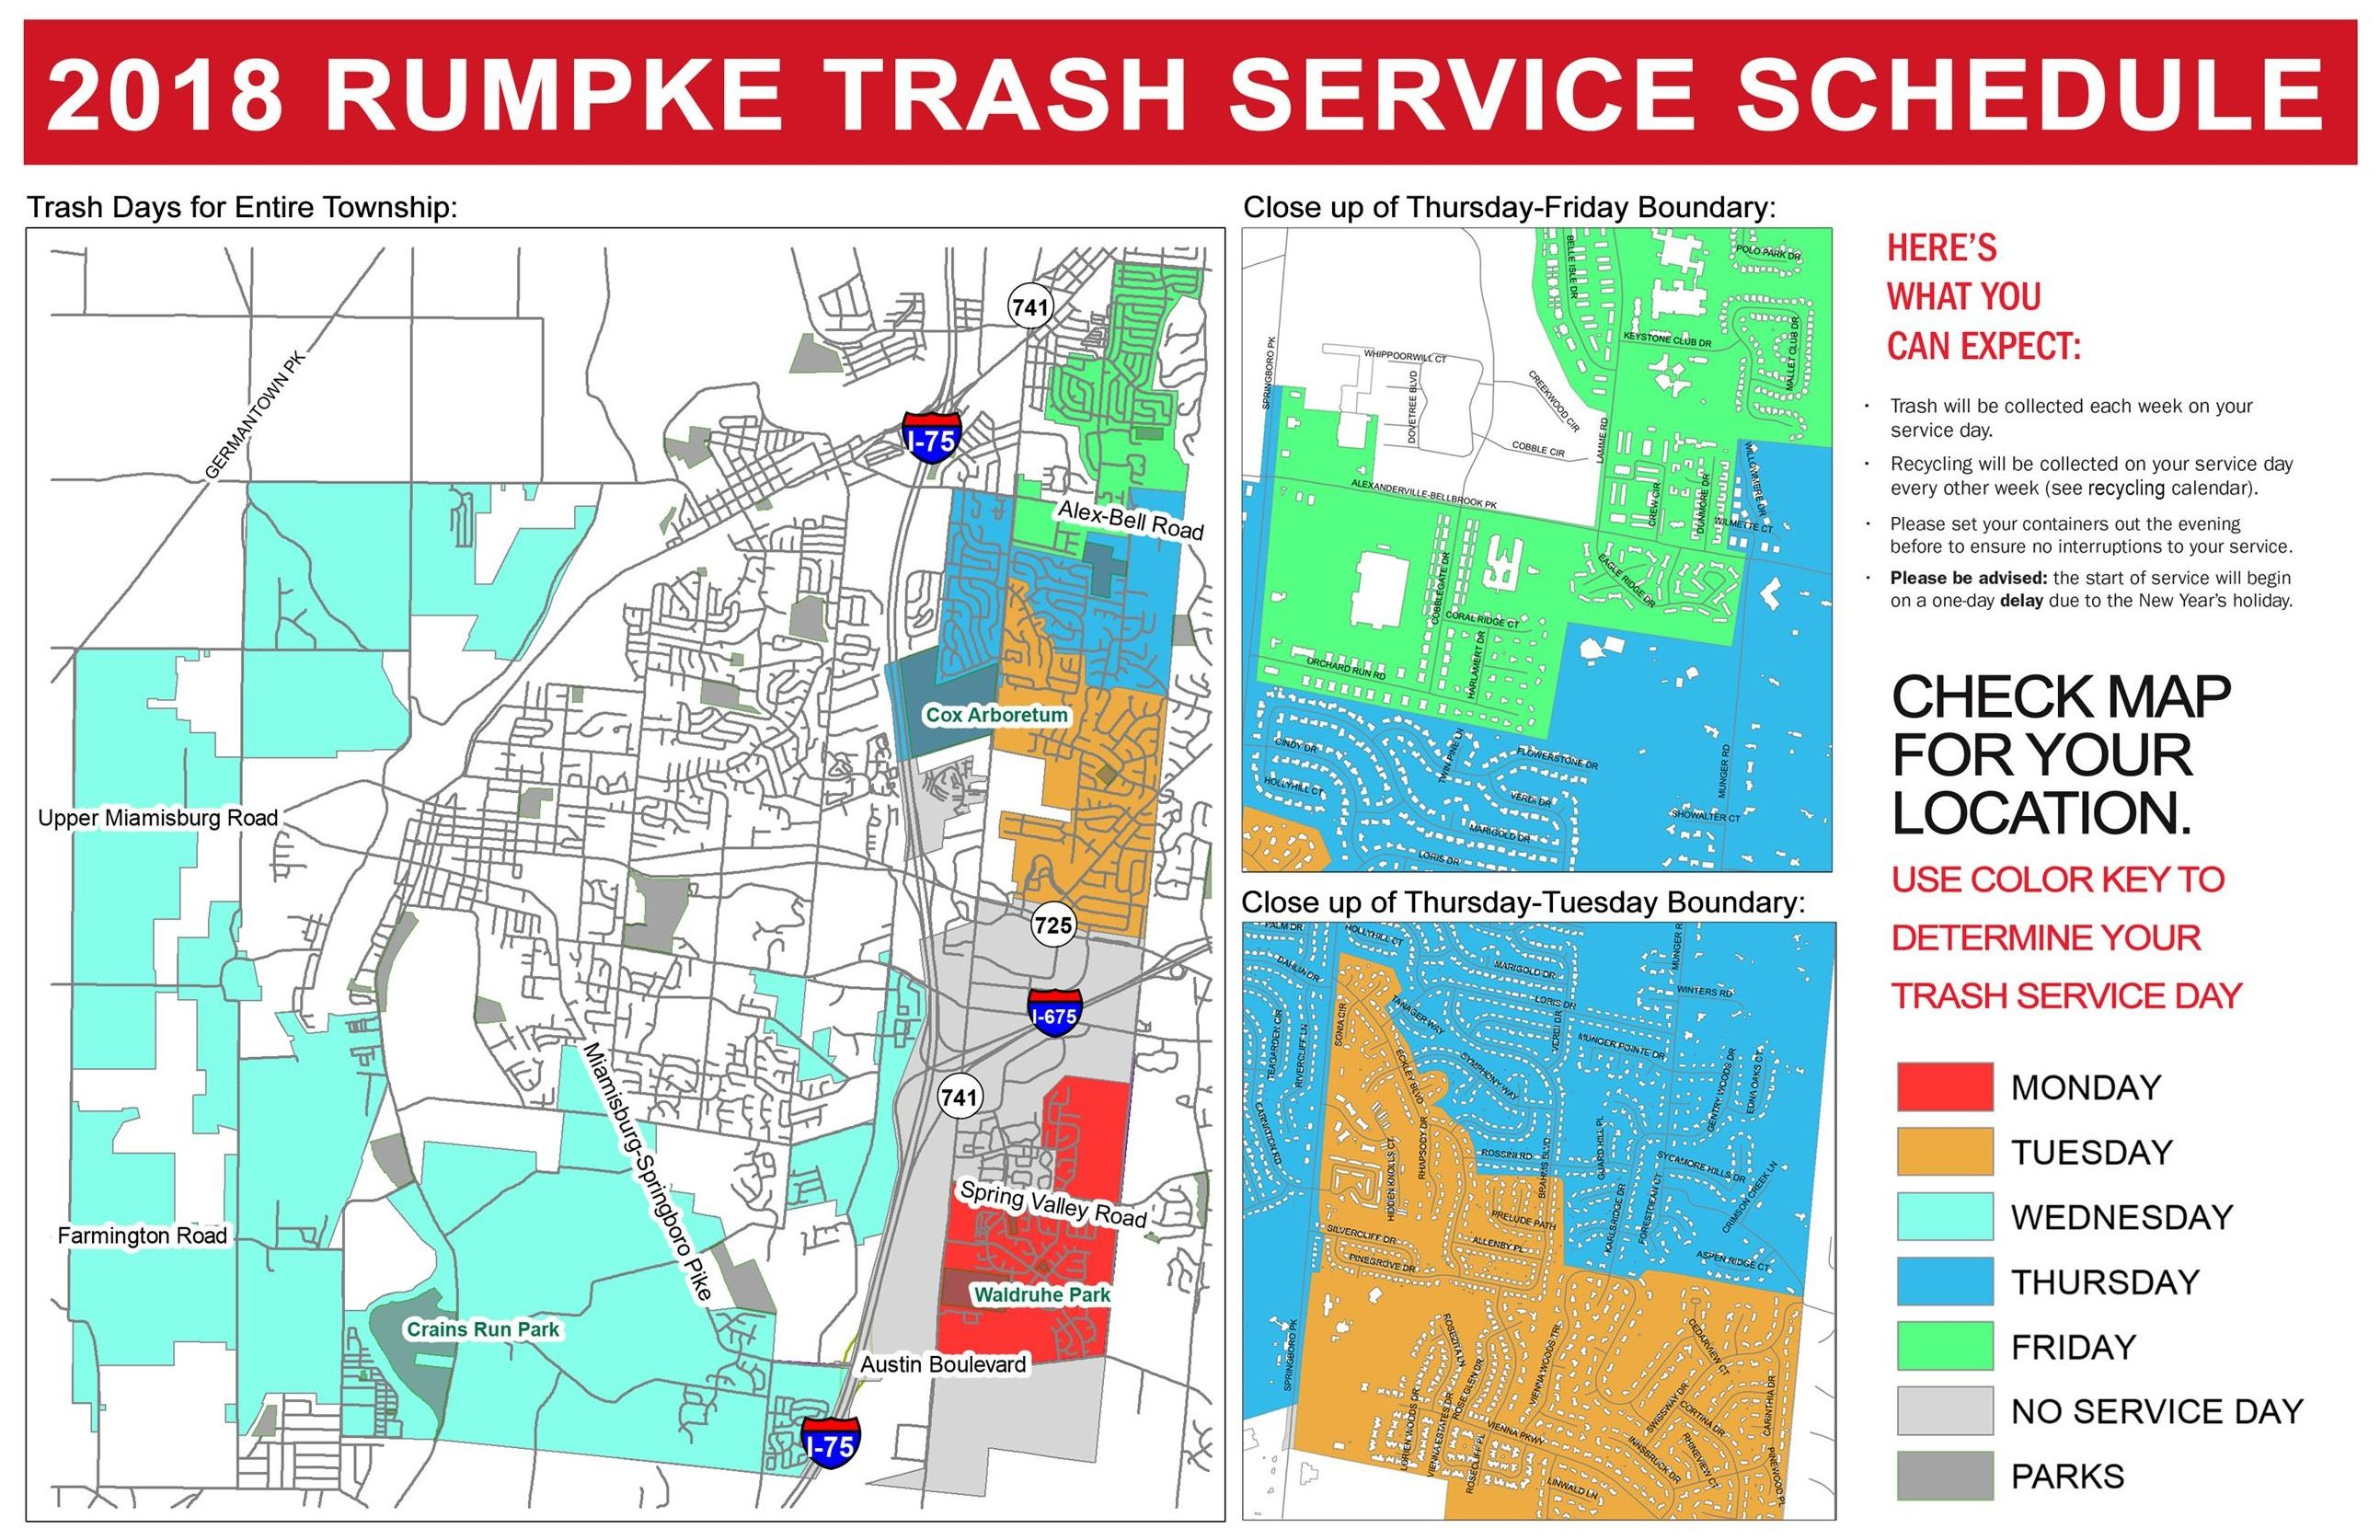 Trash Service Schedule